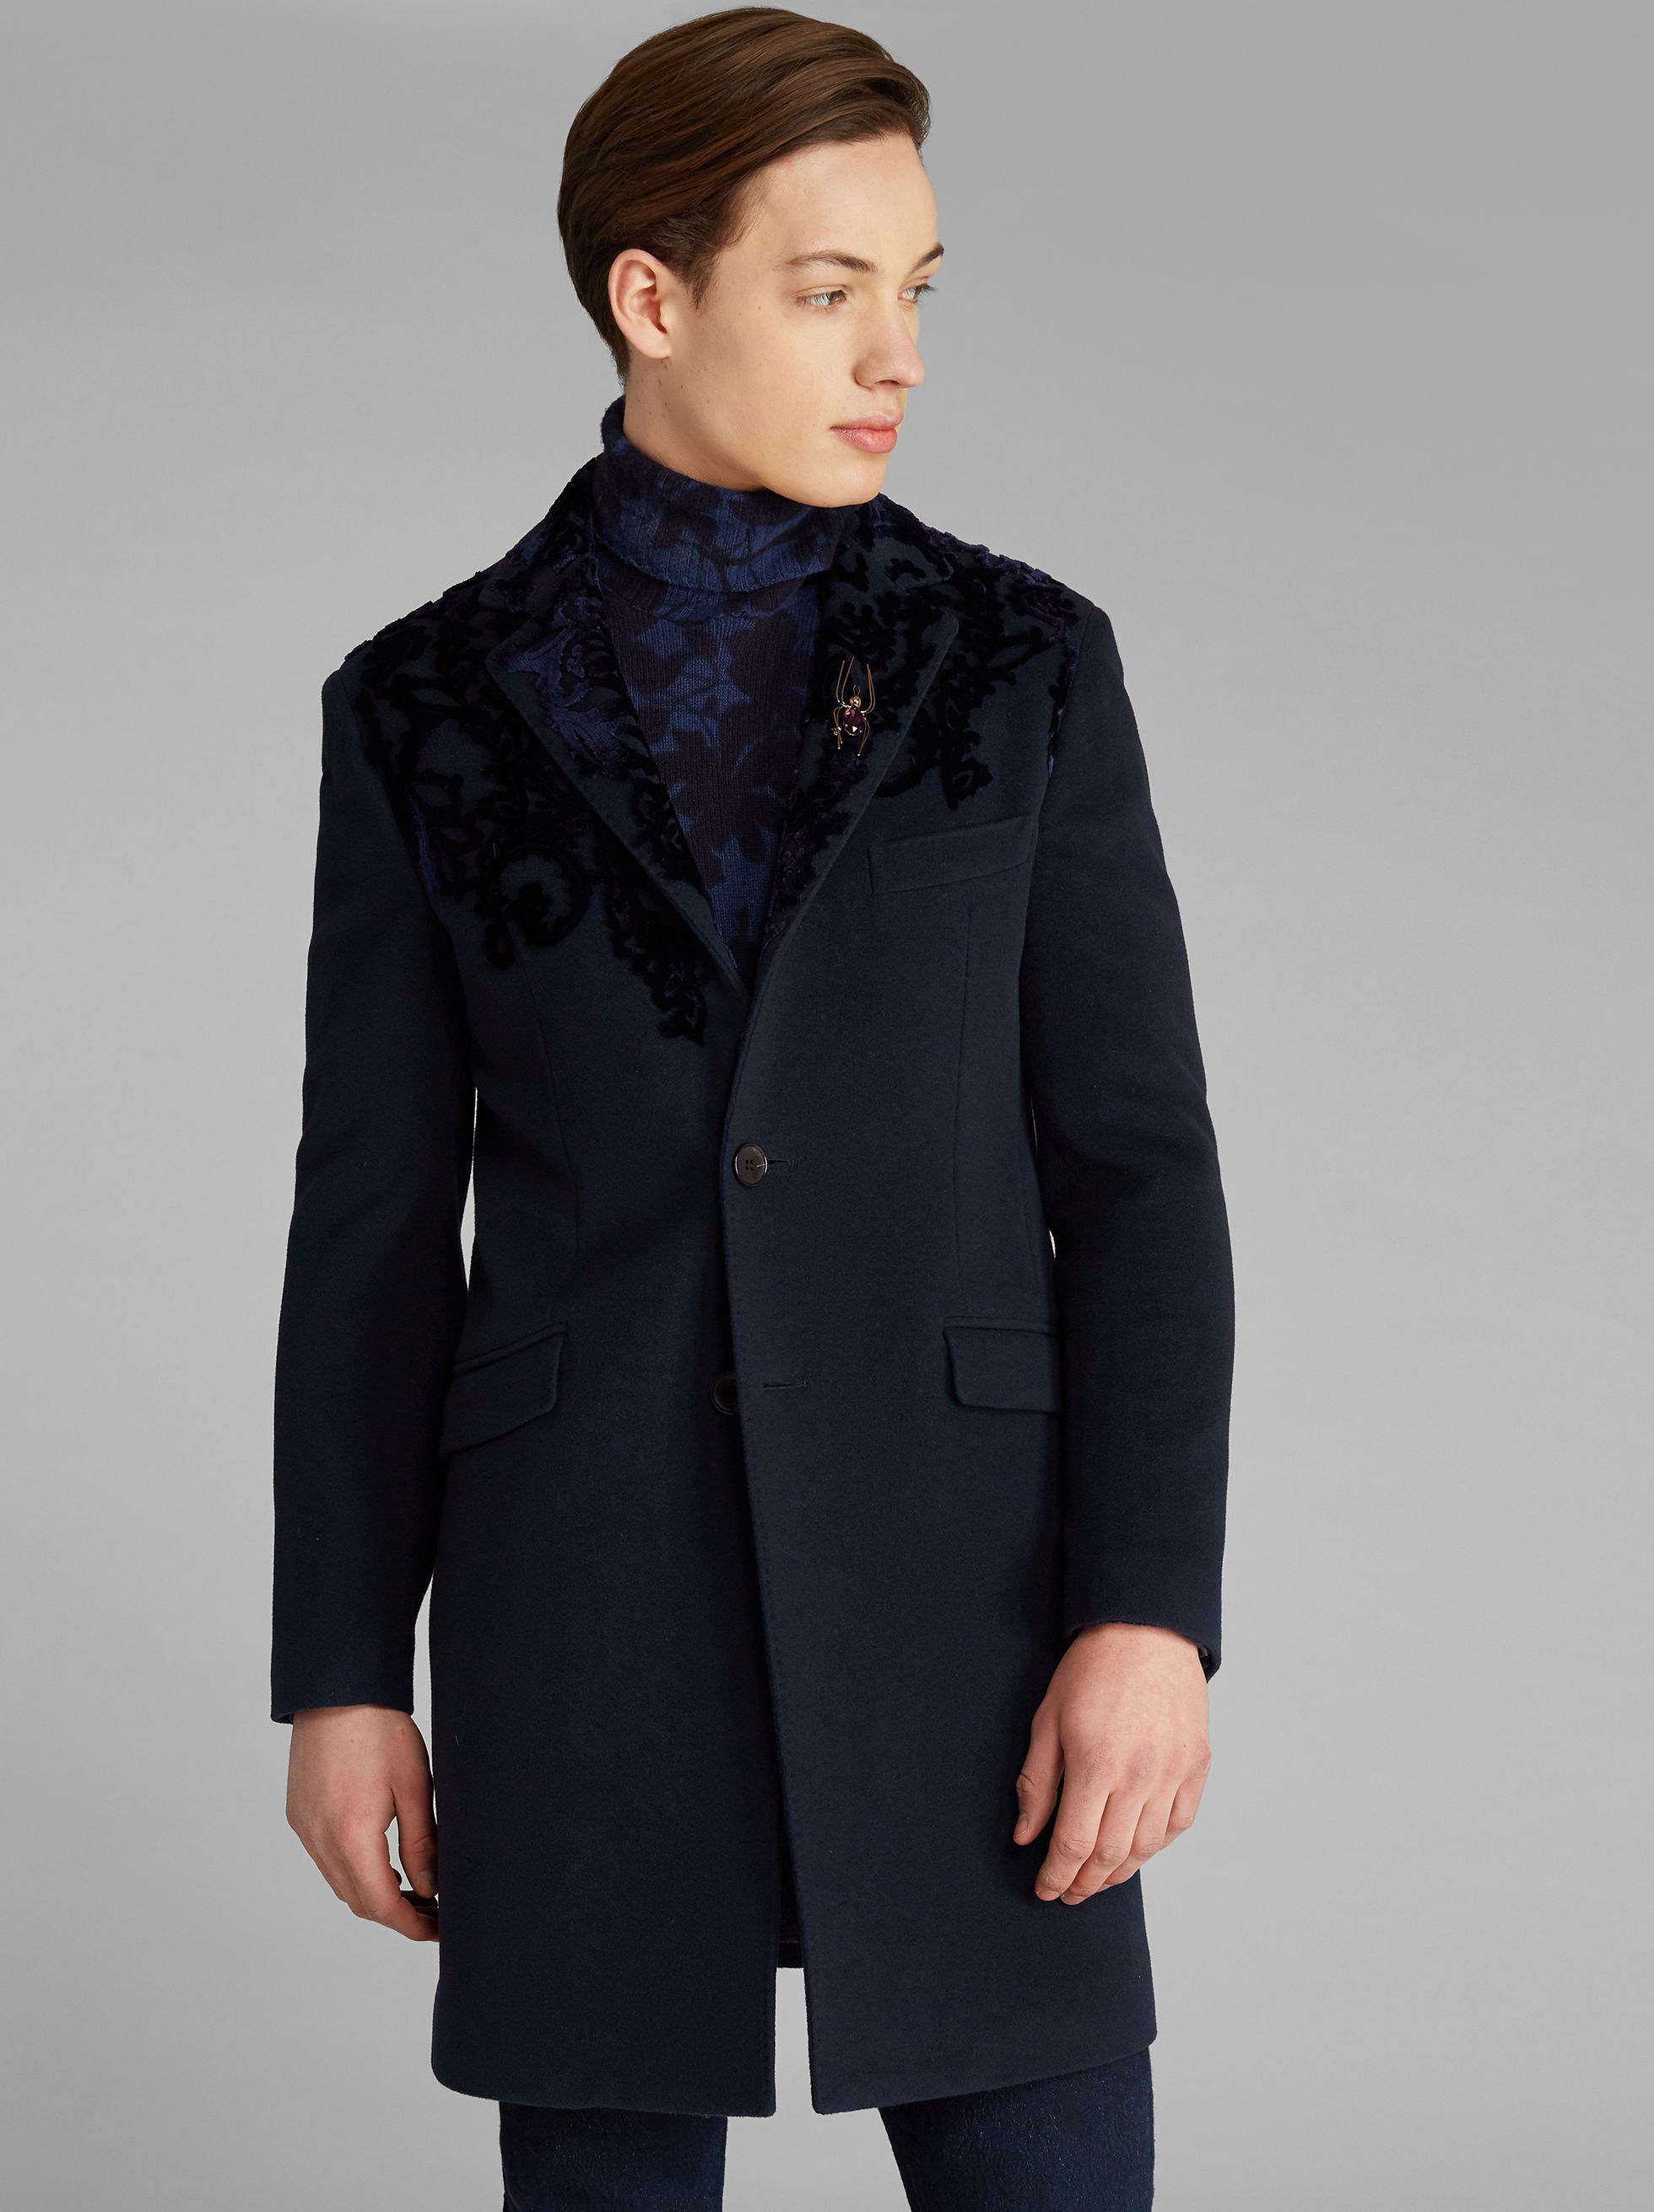 SEMI-TRADITIONAL COAT WITH VELVET DETAILS